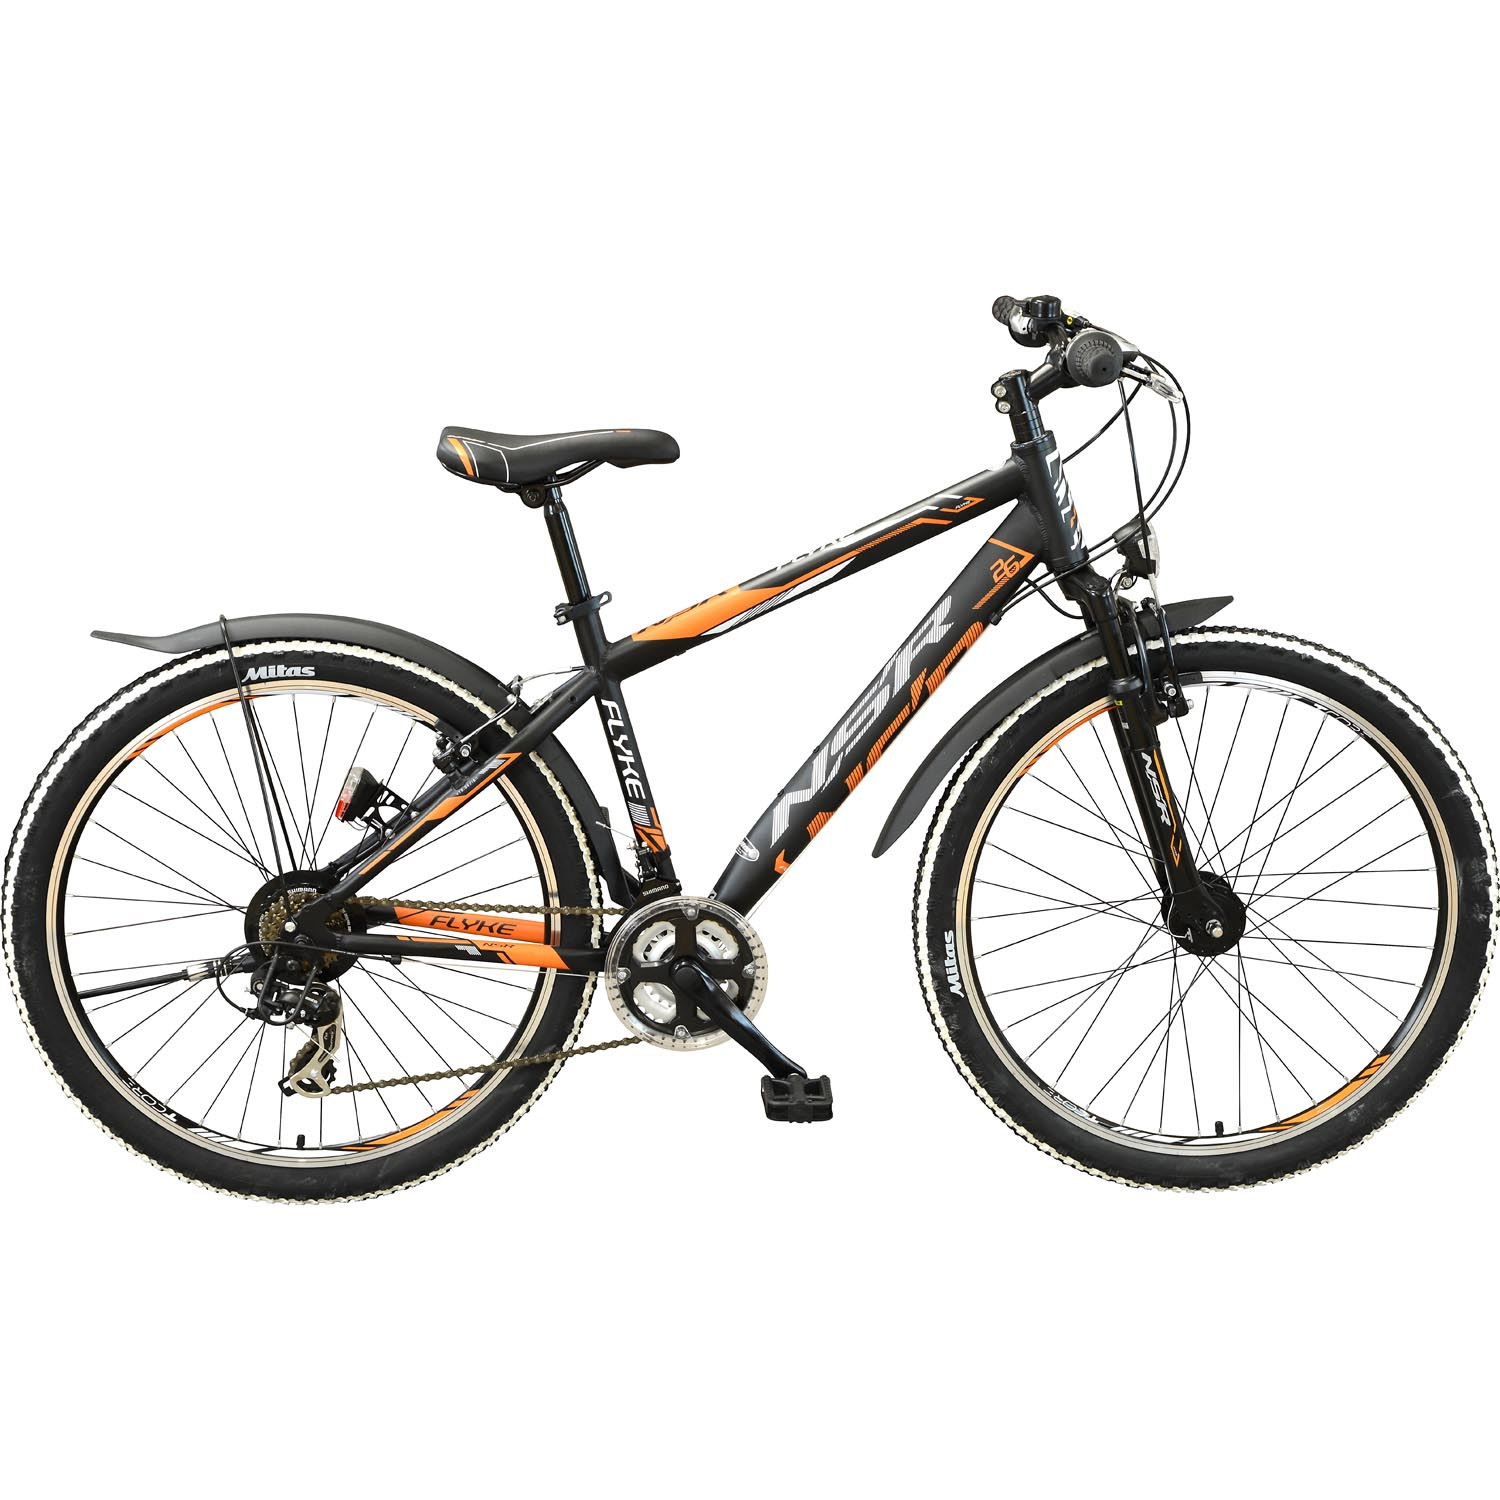 flyke mountainbike 26 zoll 38 cm schwarz orange online shop zweirad stadler. Black Bedroom Furniture Sets. Home Design Ideas